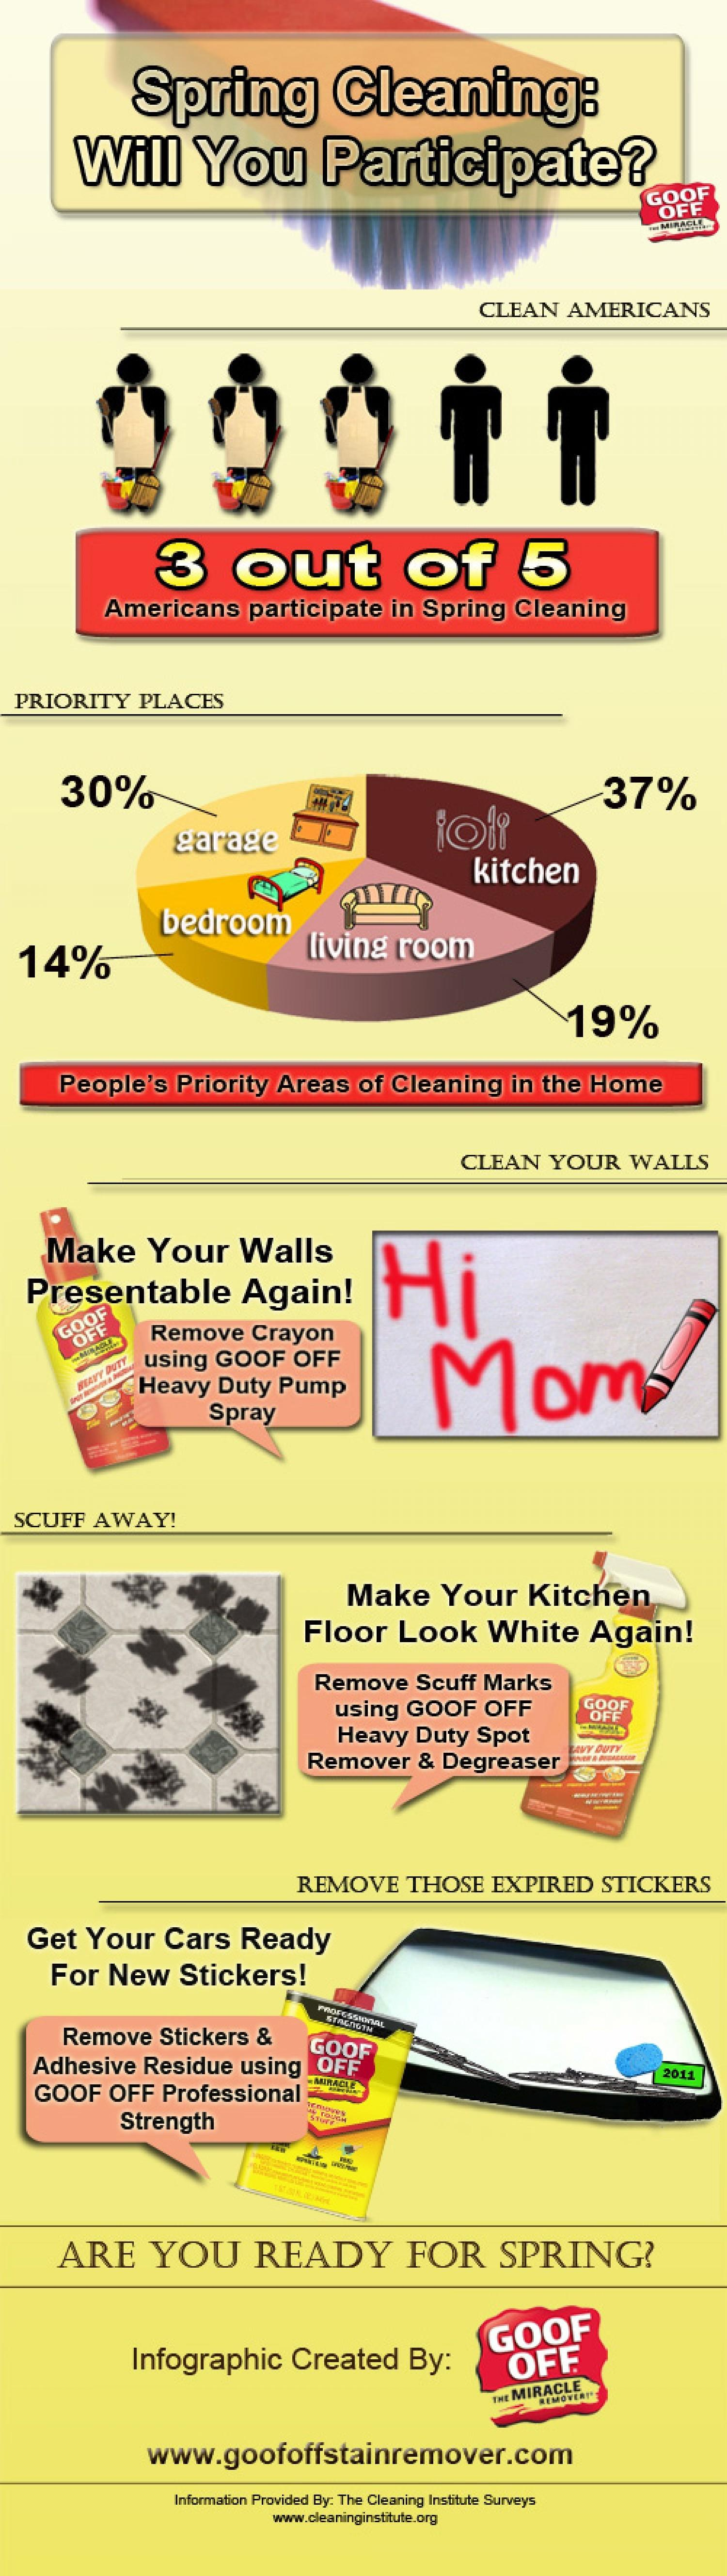 Spring Cleaning Tips Visual